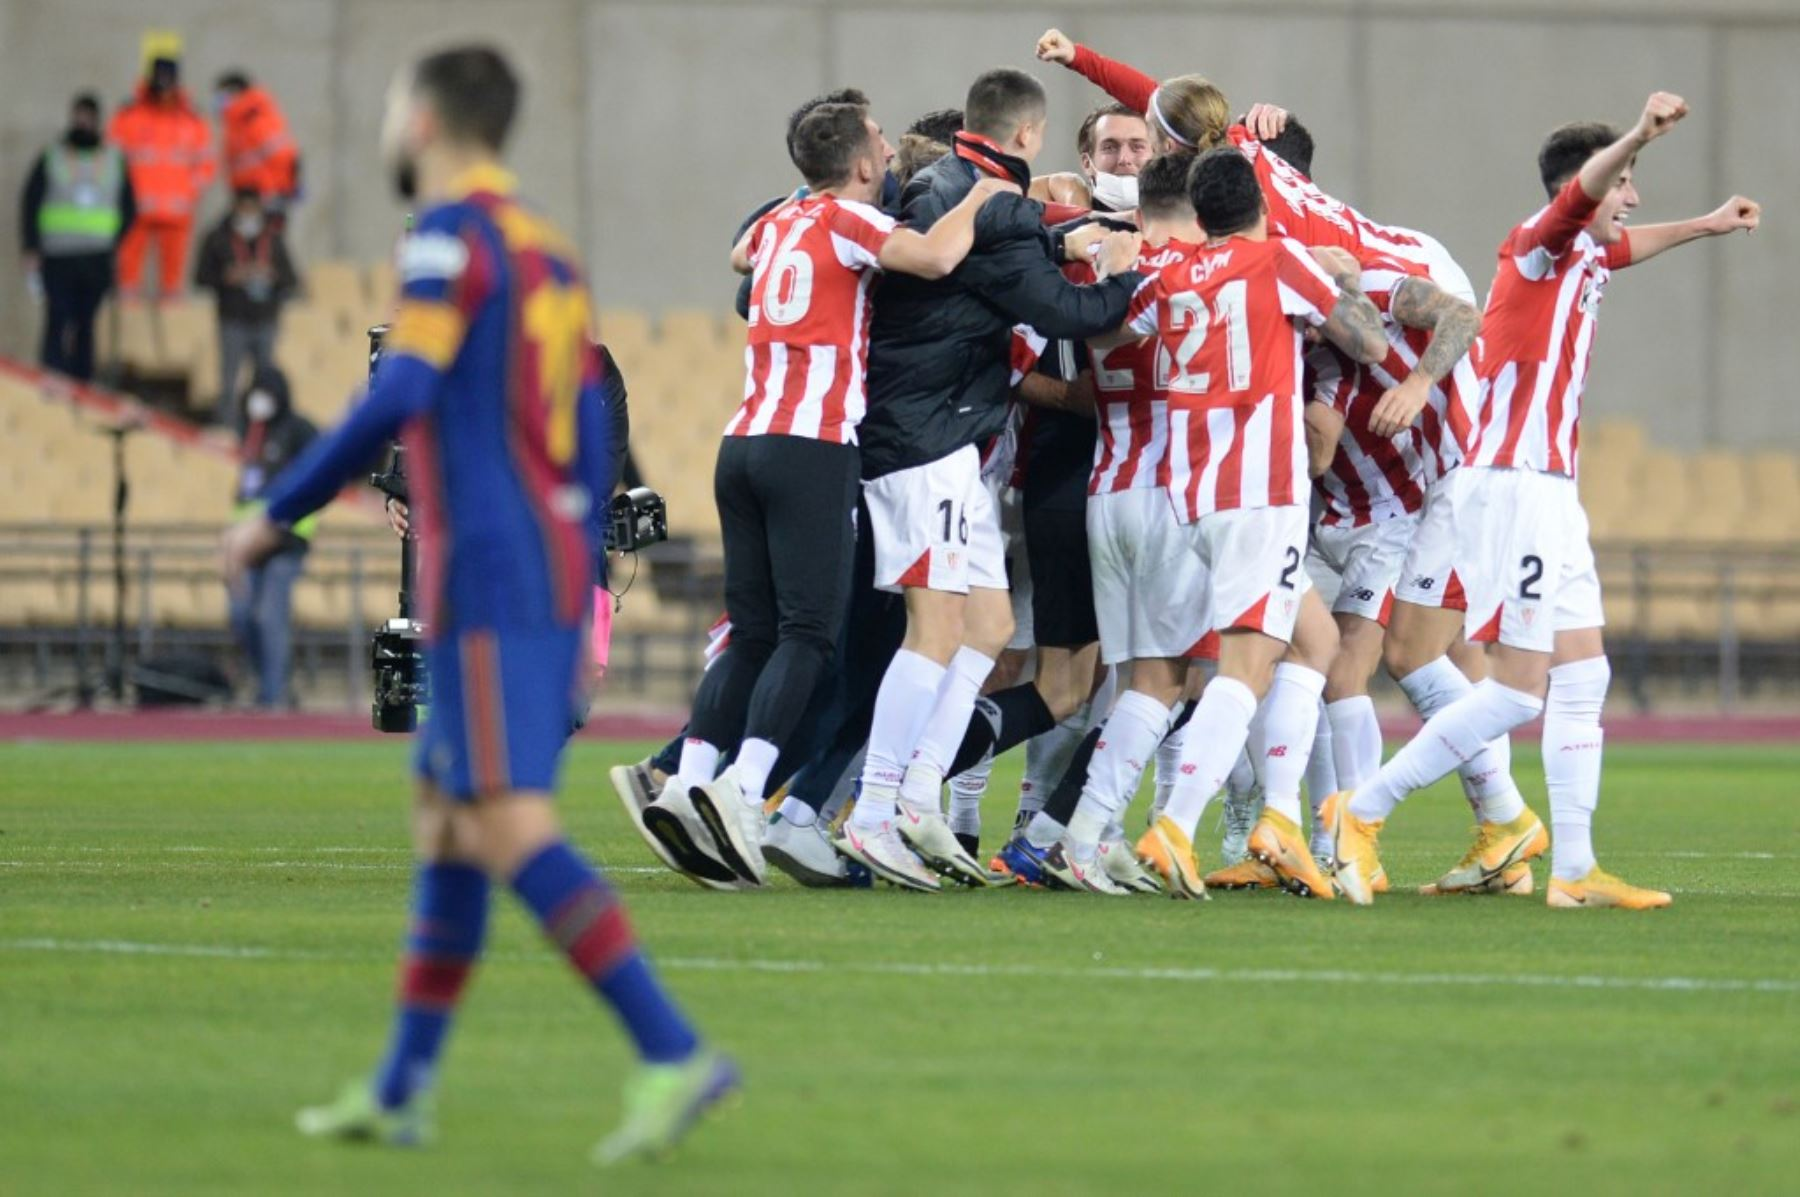 Athletic de Bilbao derrota a Barcelona en la final de la Supercopa de España